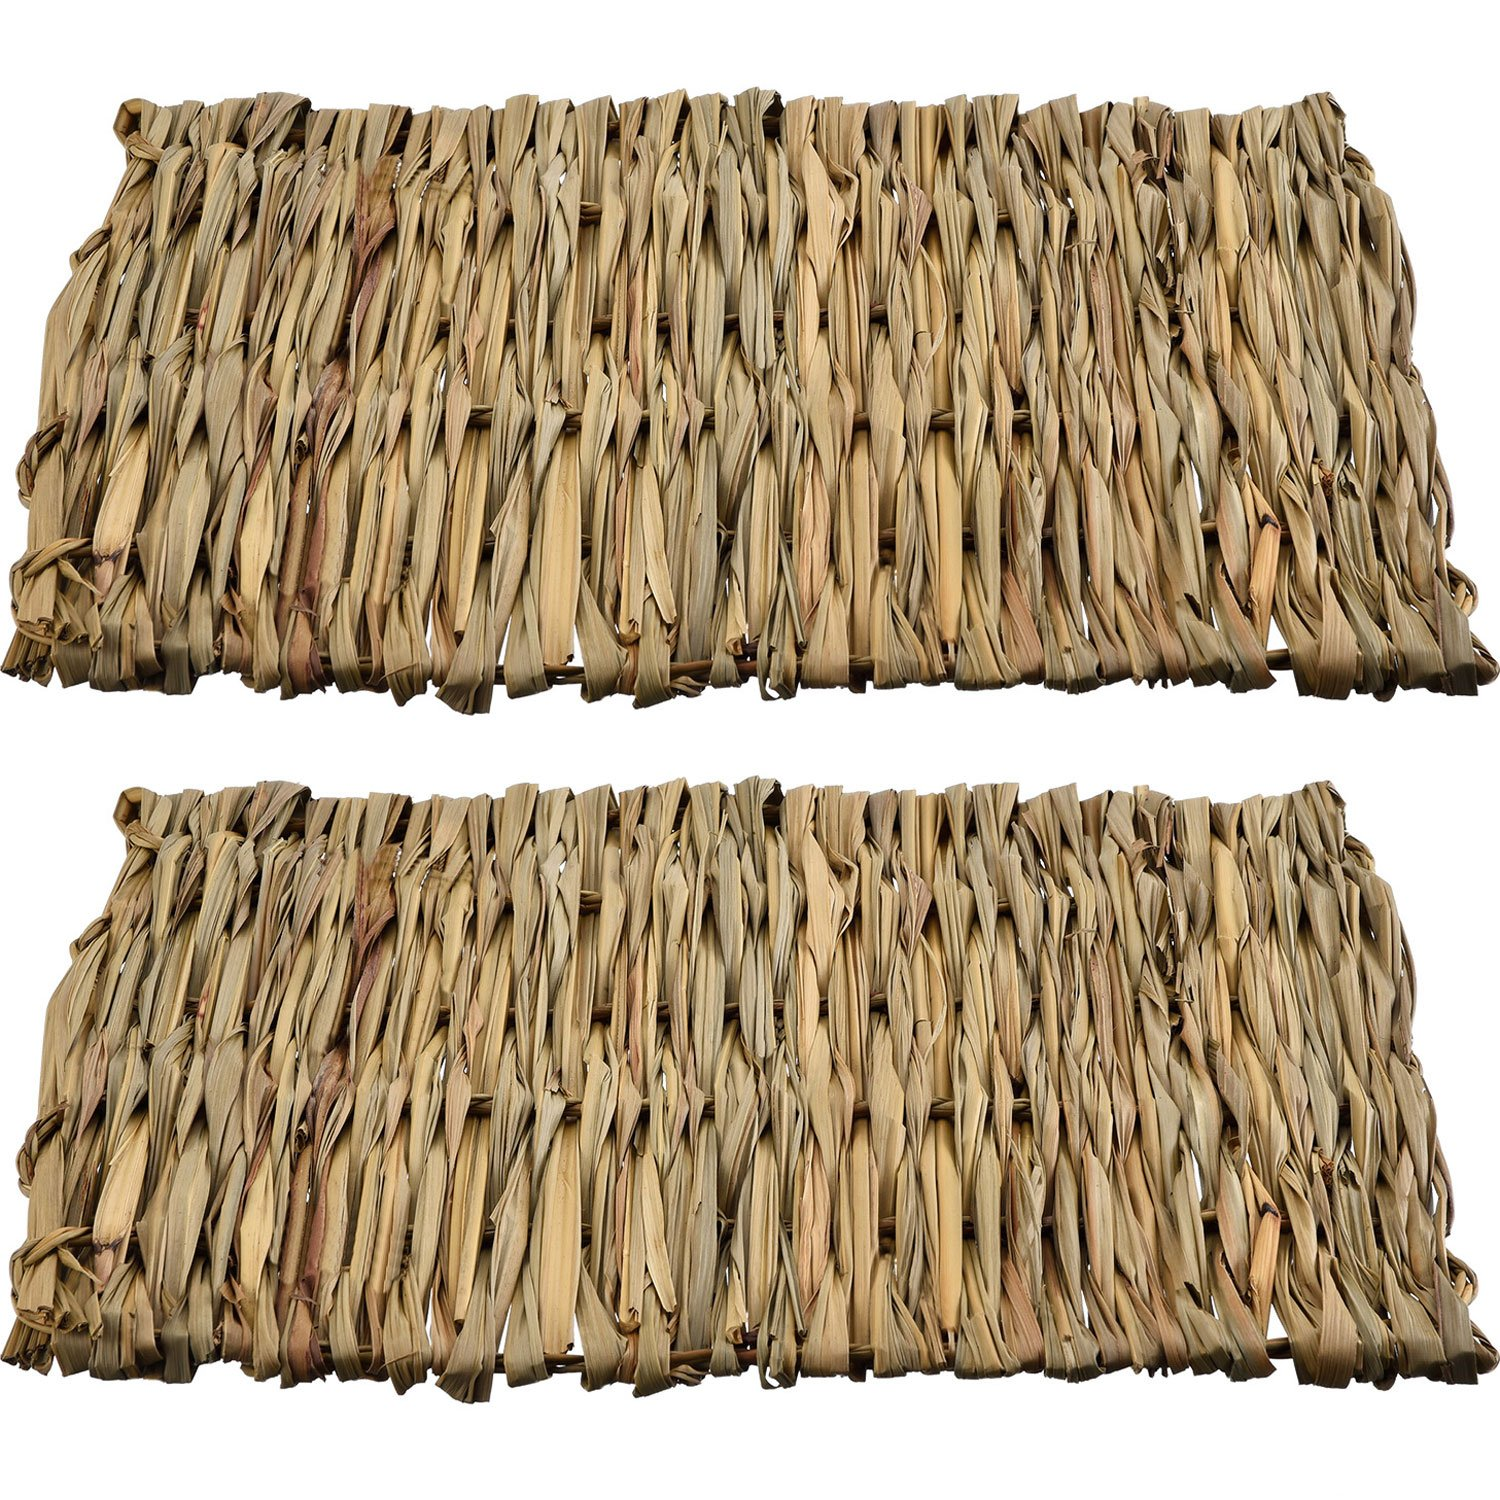 2 Pack Small Animal Chew Toy Beds Natural Handwoven Grass Mats, Safe and Edible for Hamsters, Rabbits, Parrot Guinea Pig and Ferret Pangda